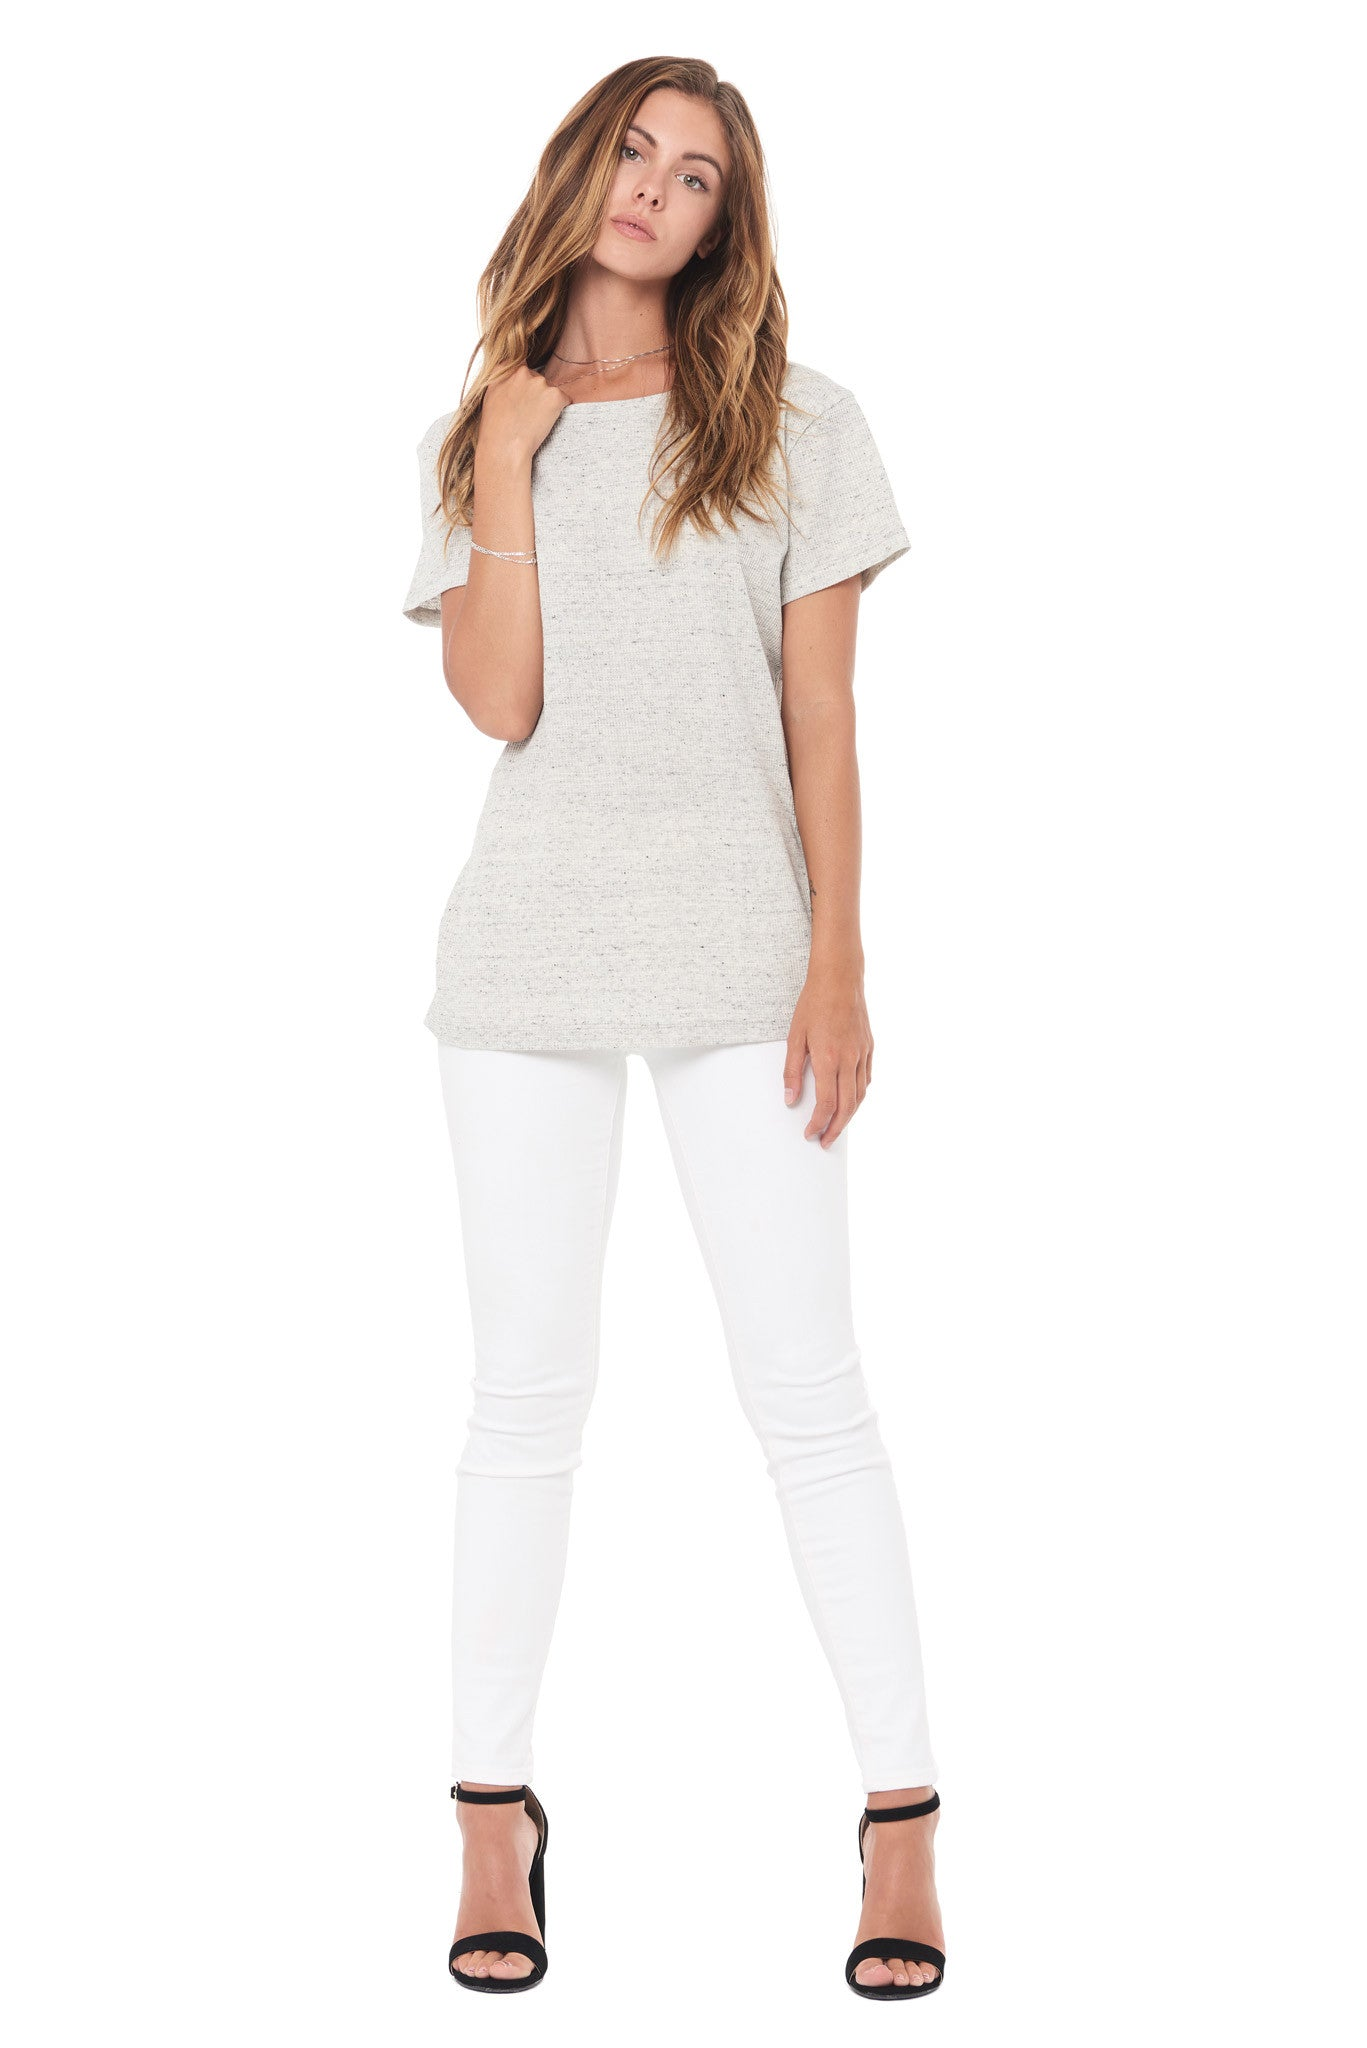 WOMEN'S NOVELTY TEXTURE CREW NECK TEE - CREAM THERMAL